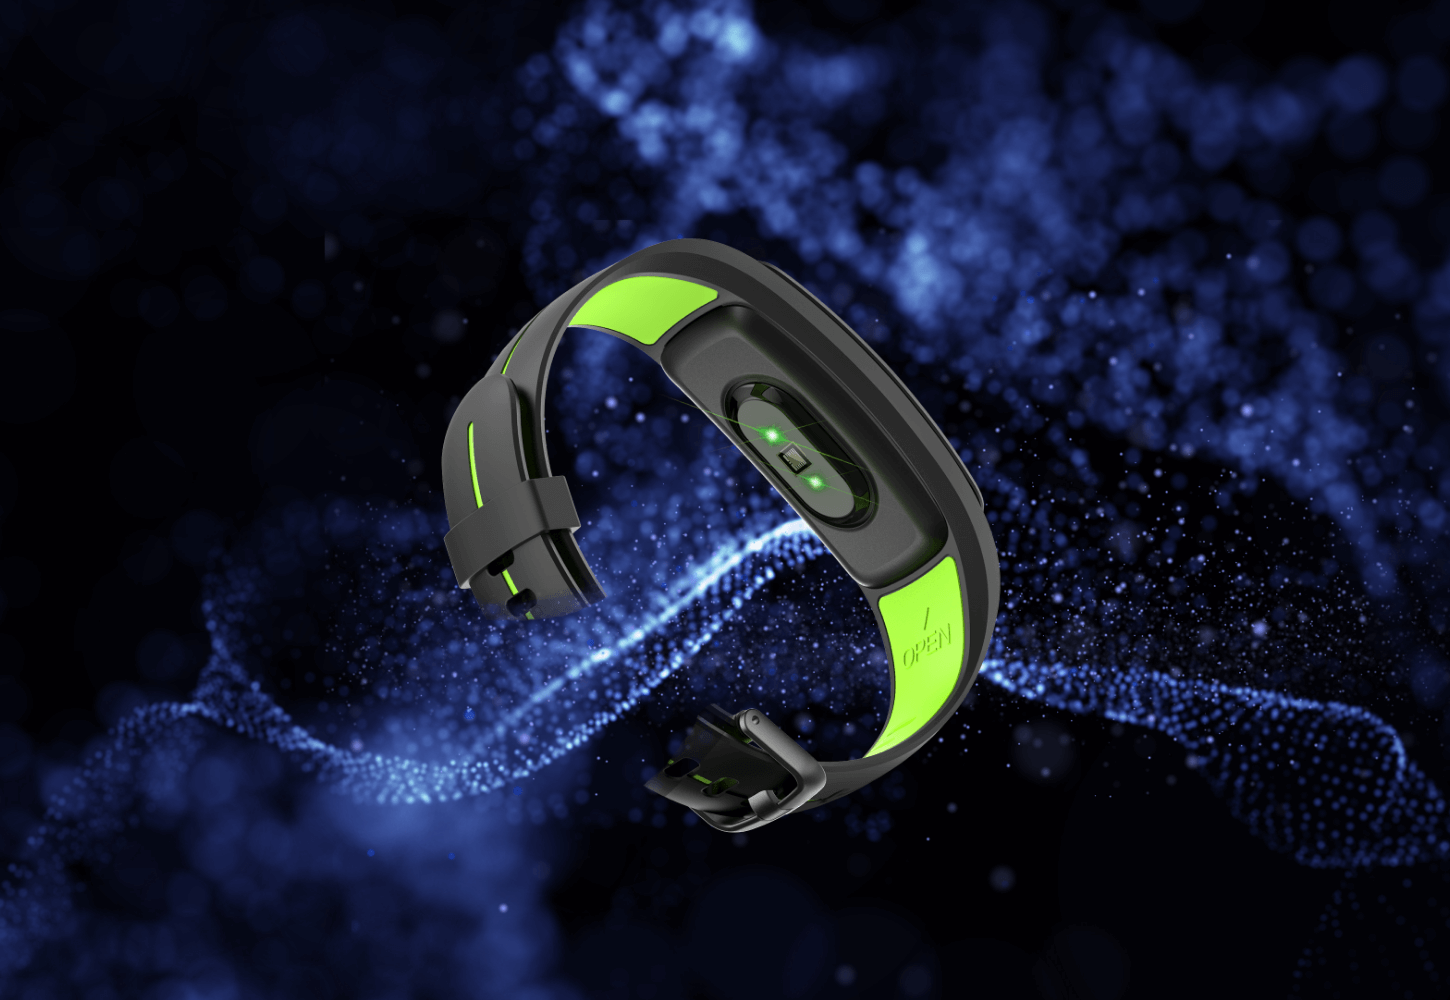 10-day Playtime Smart Band